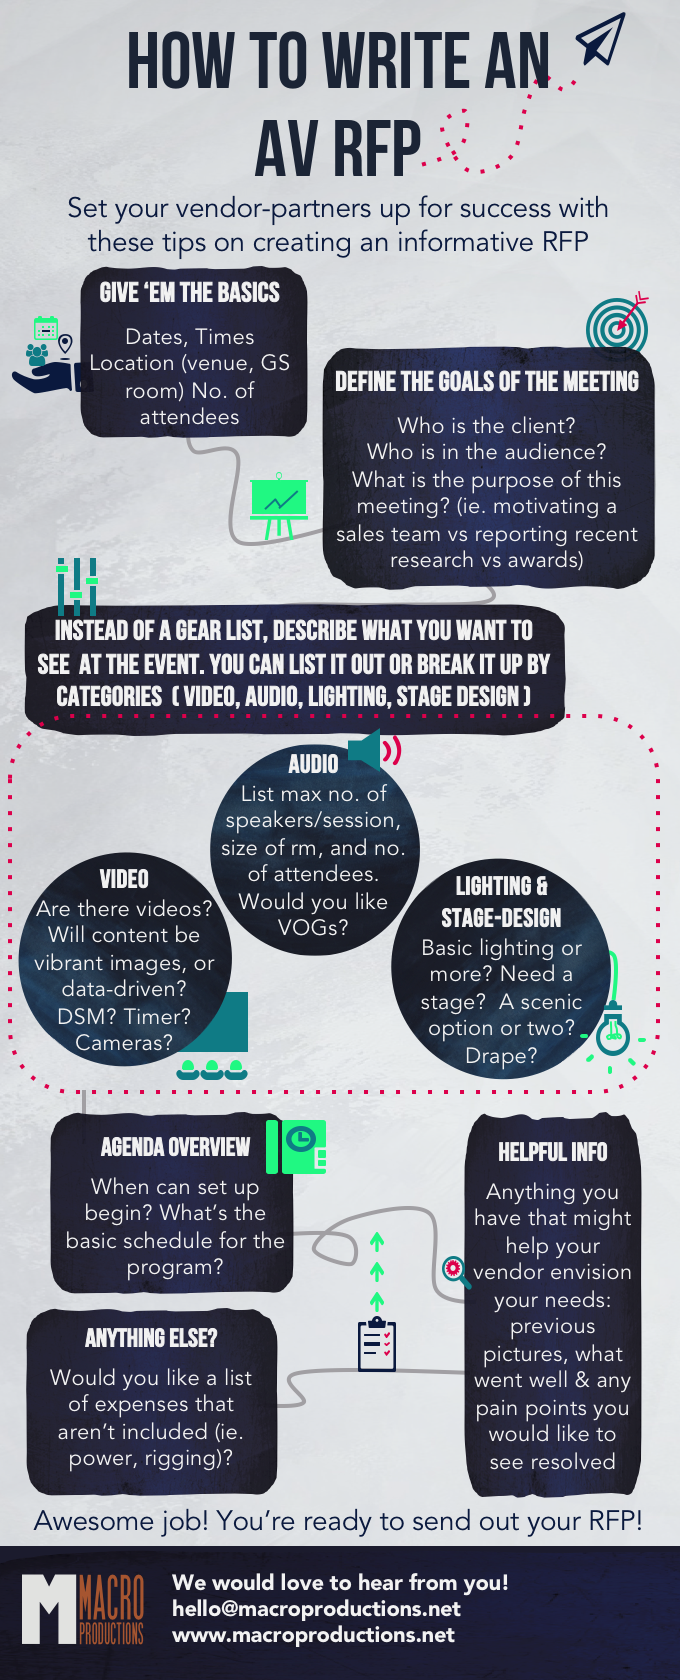 If you like this infographic, feel free to download it  here .